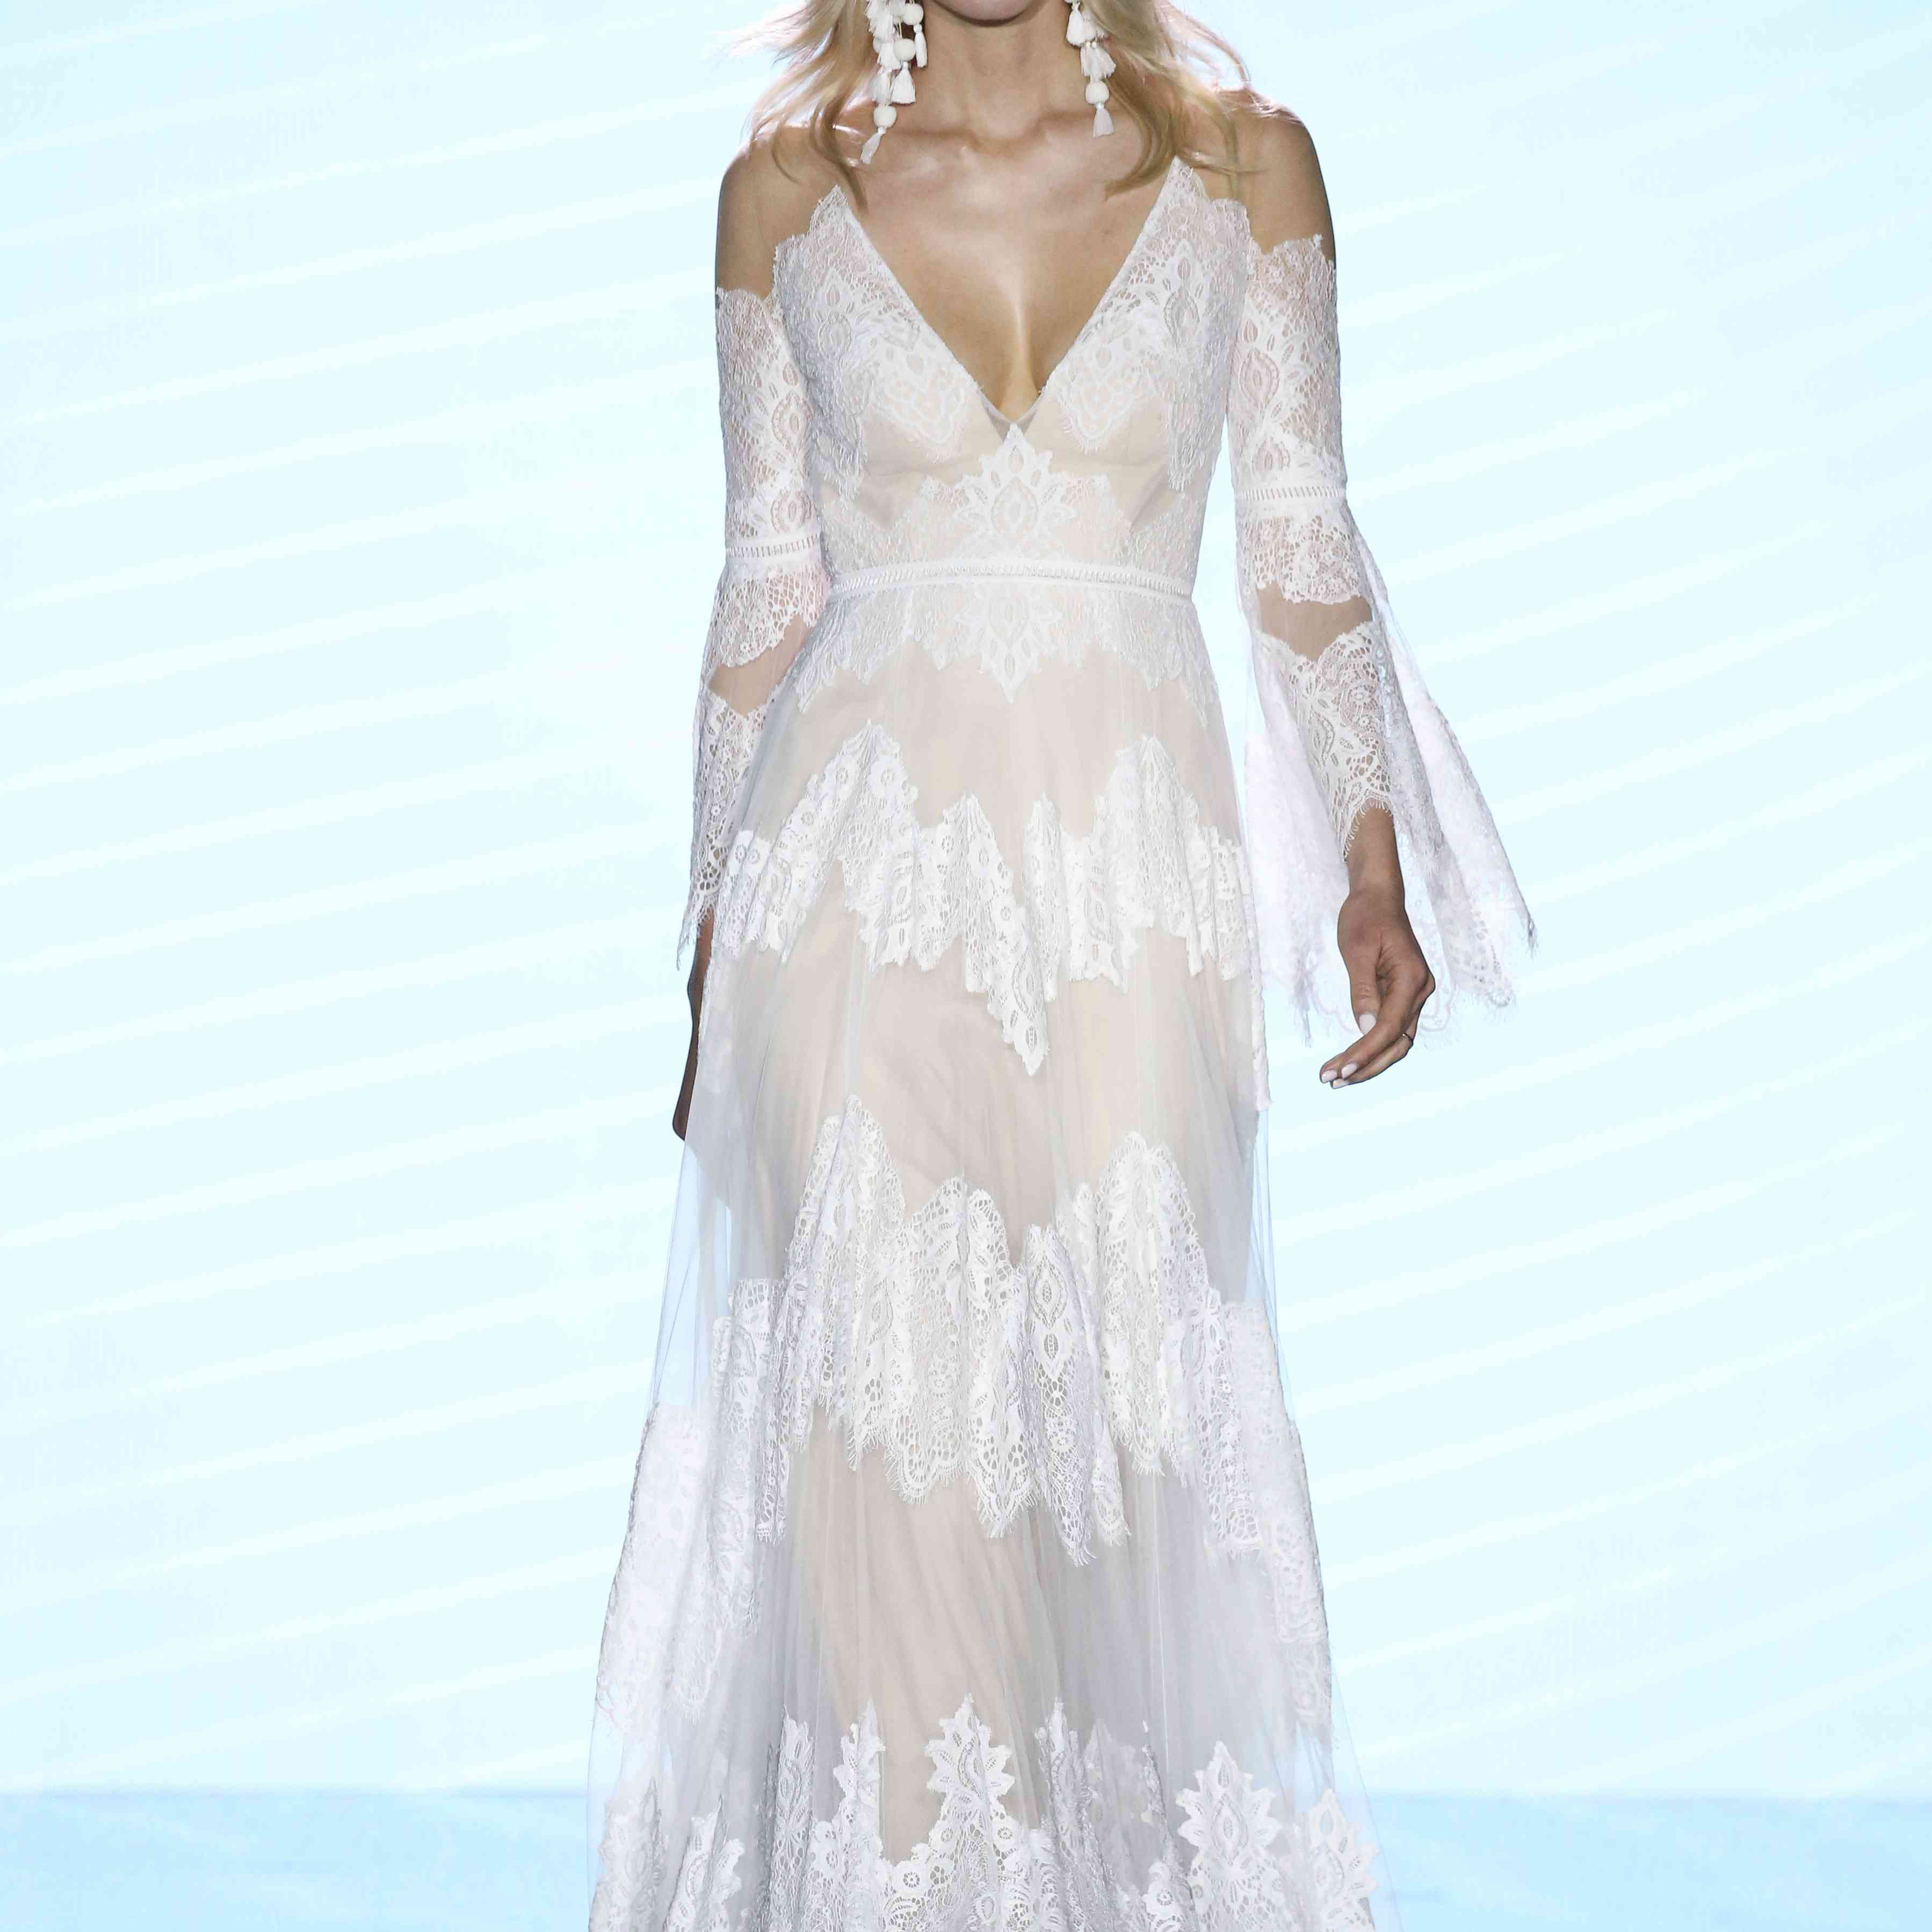 Model in lace over tulle wedding dress with cold shoulder bell sleeves and deep V-neckline